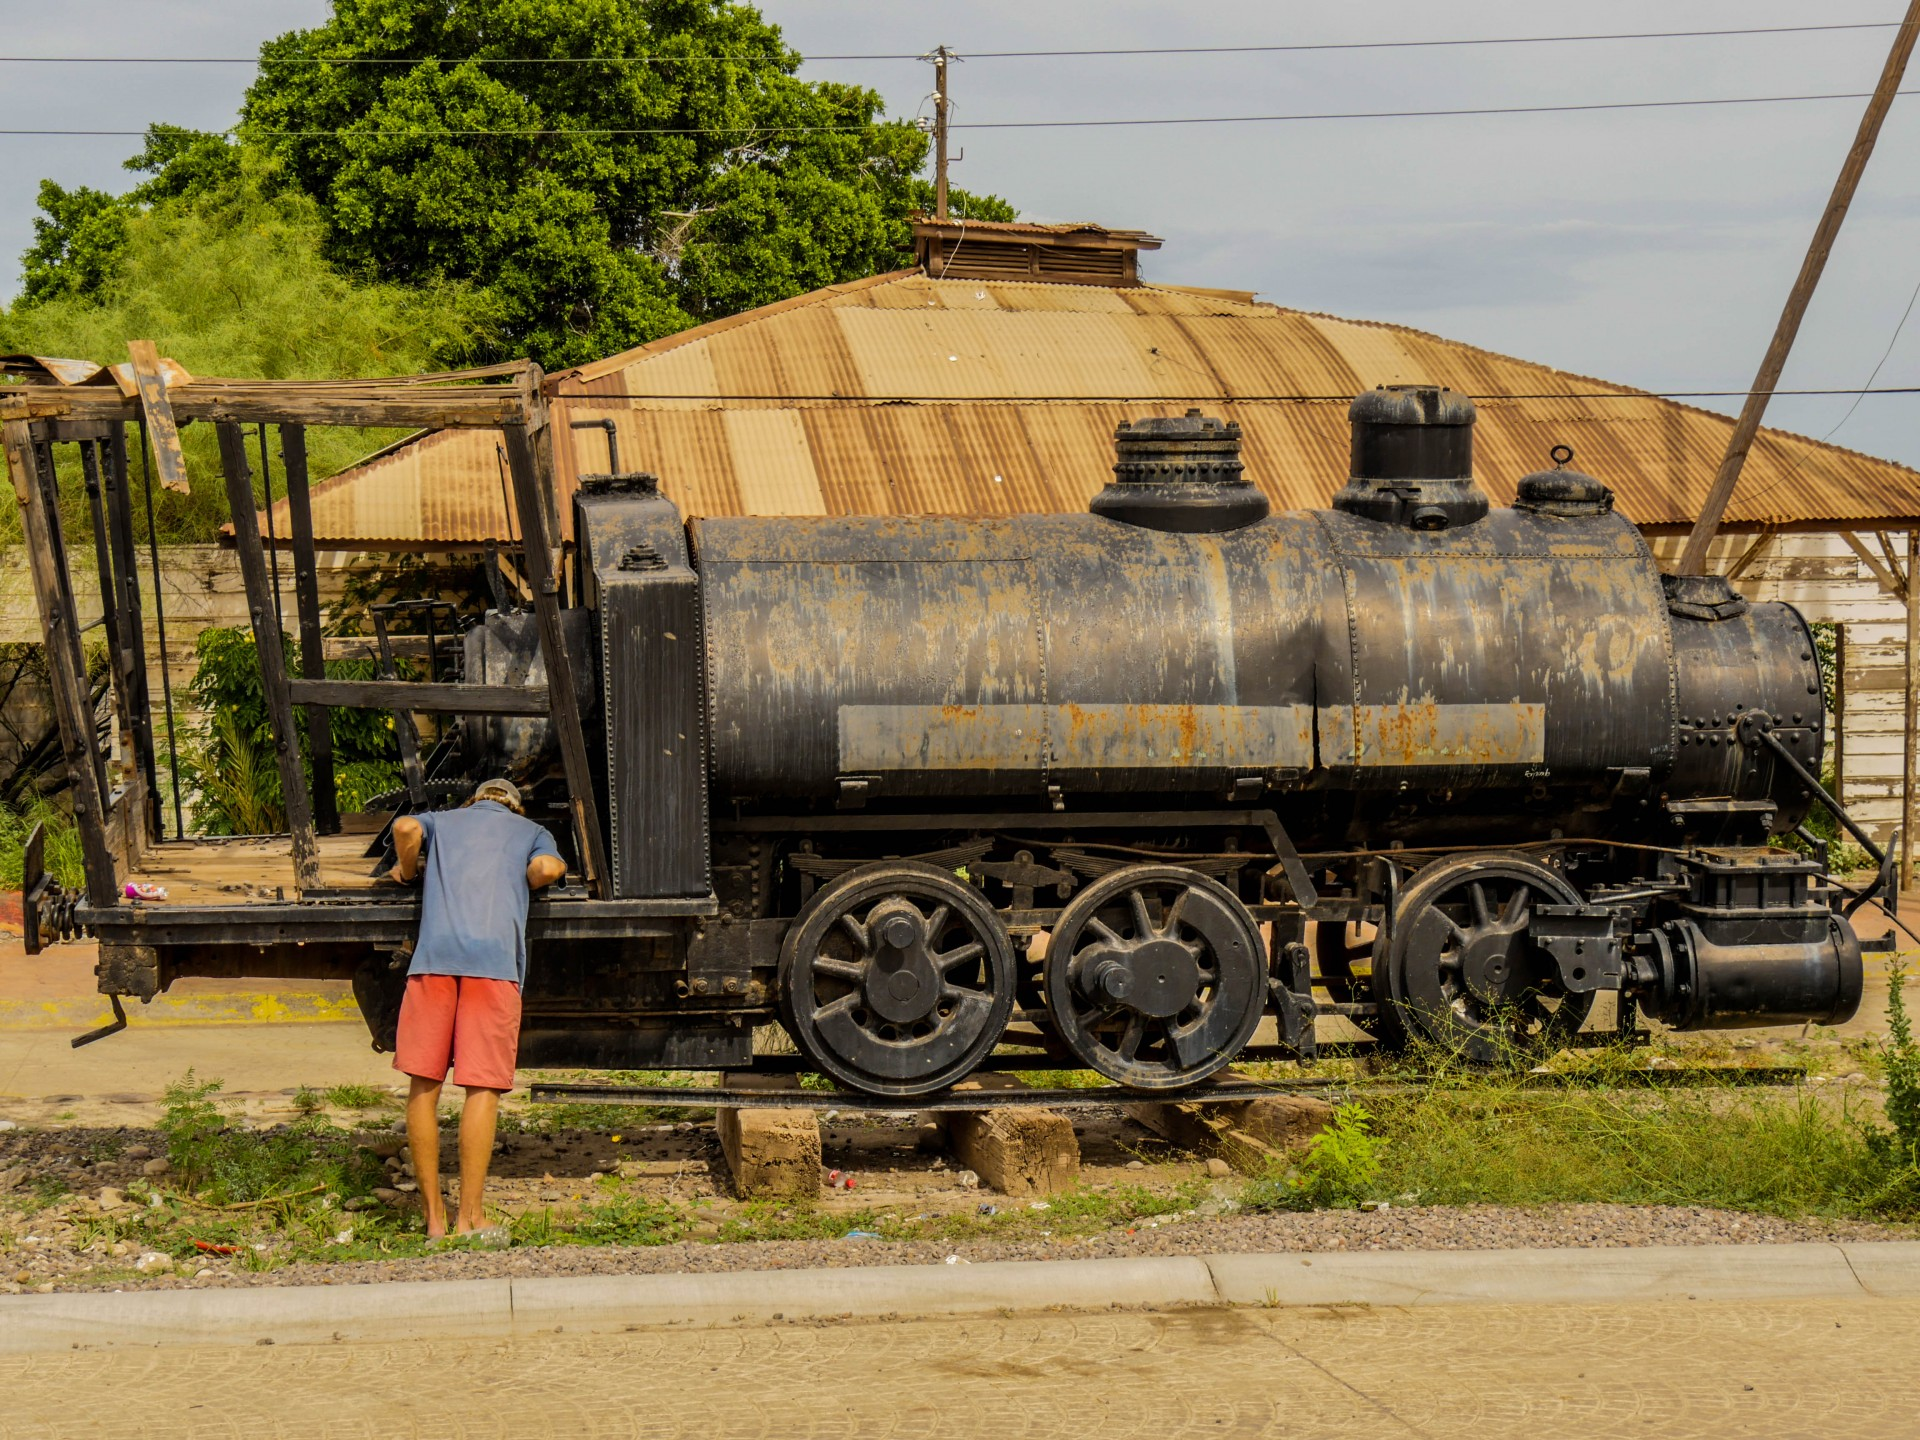 Josh peers into the narrow gauge rail engine on a side street in Santa Rosalía.